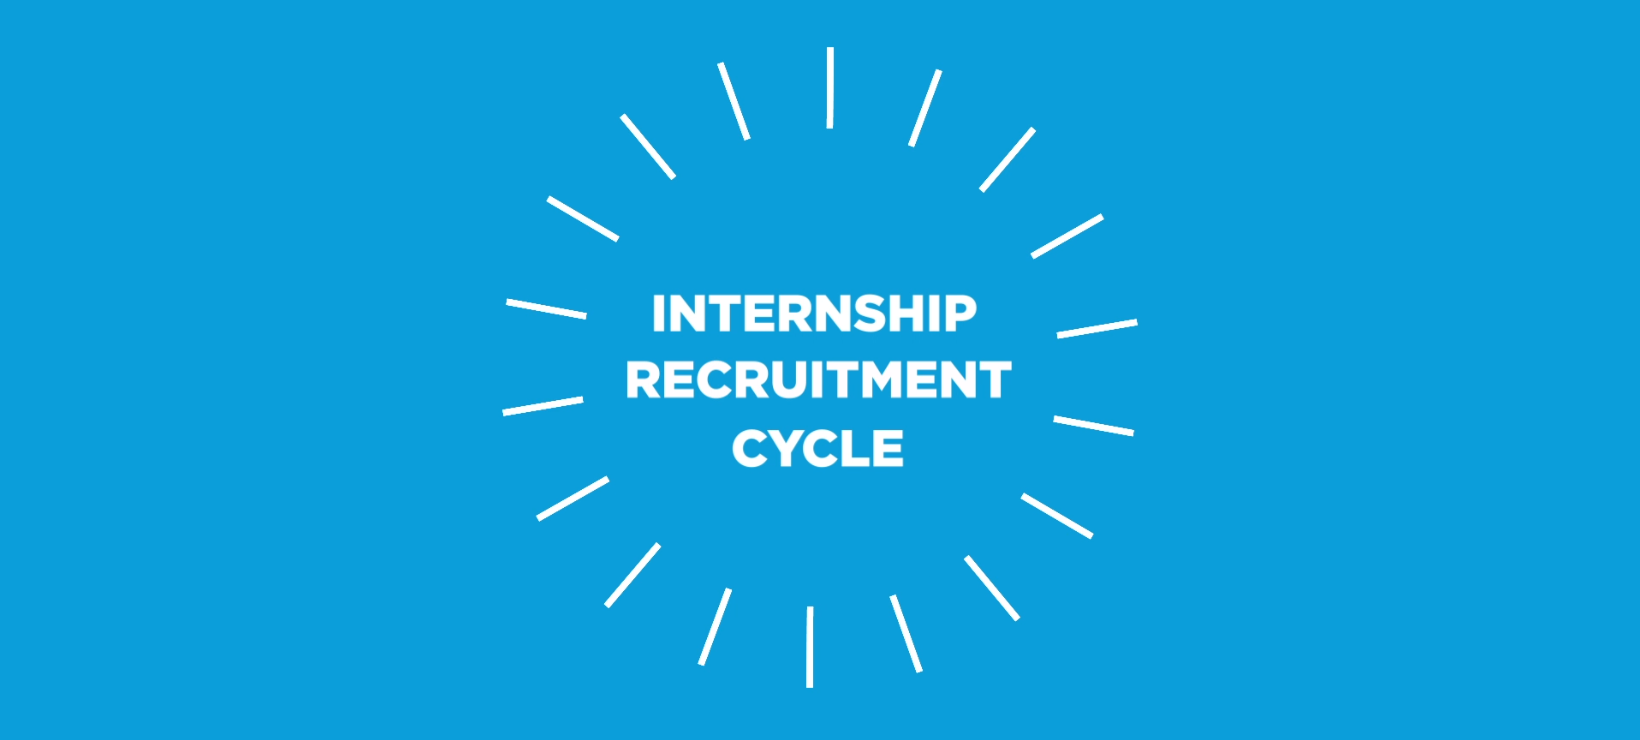 Intern recruitment cycle